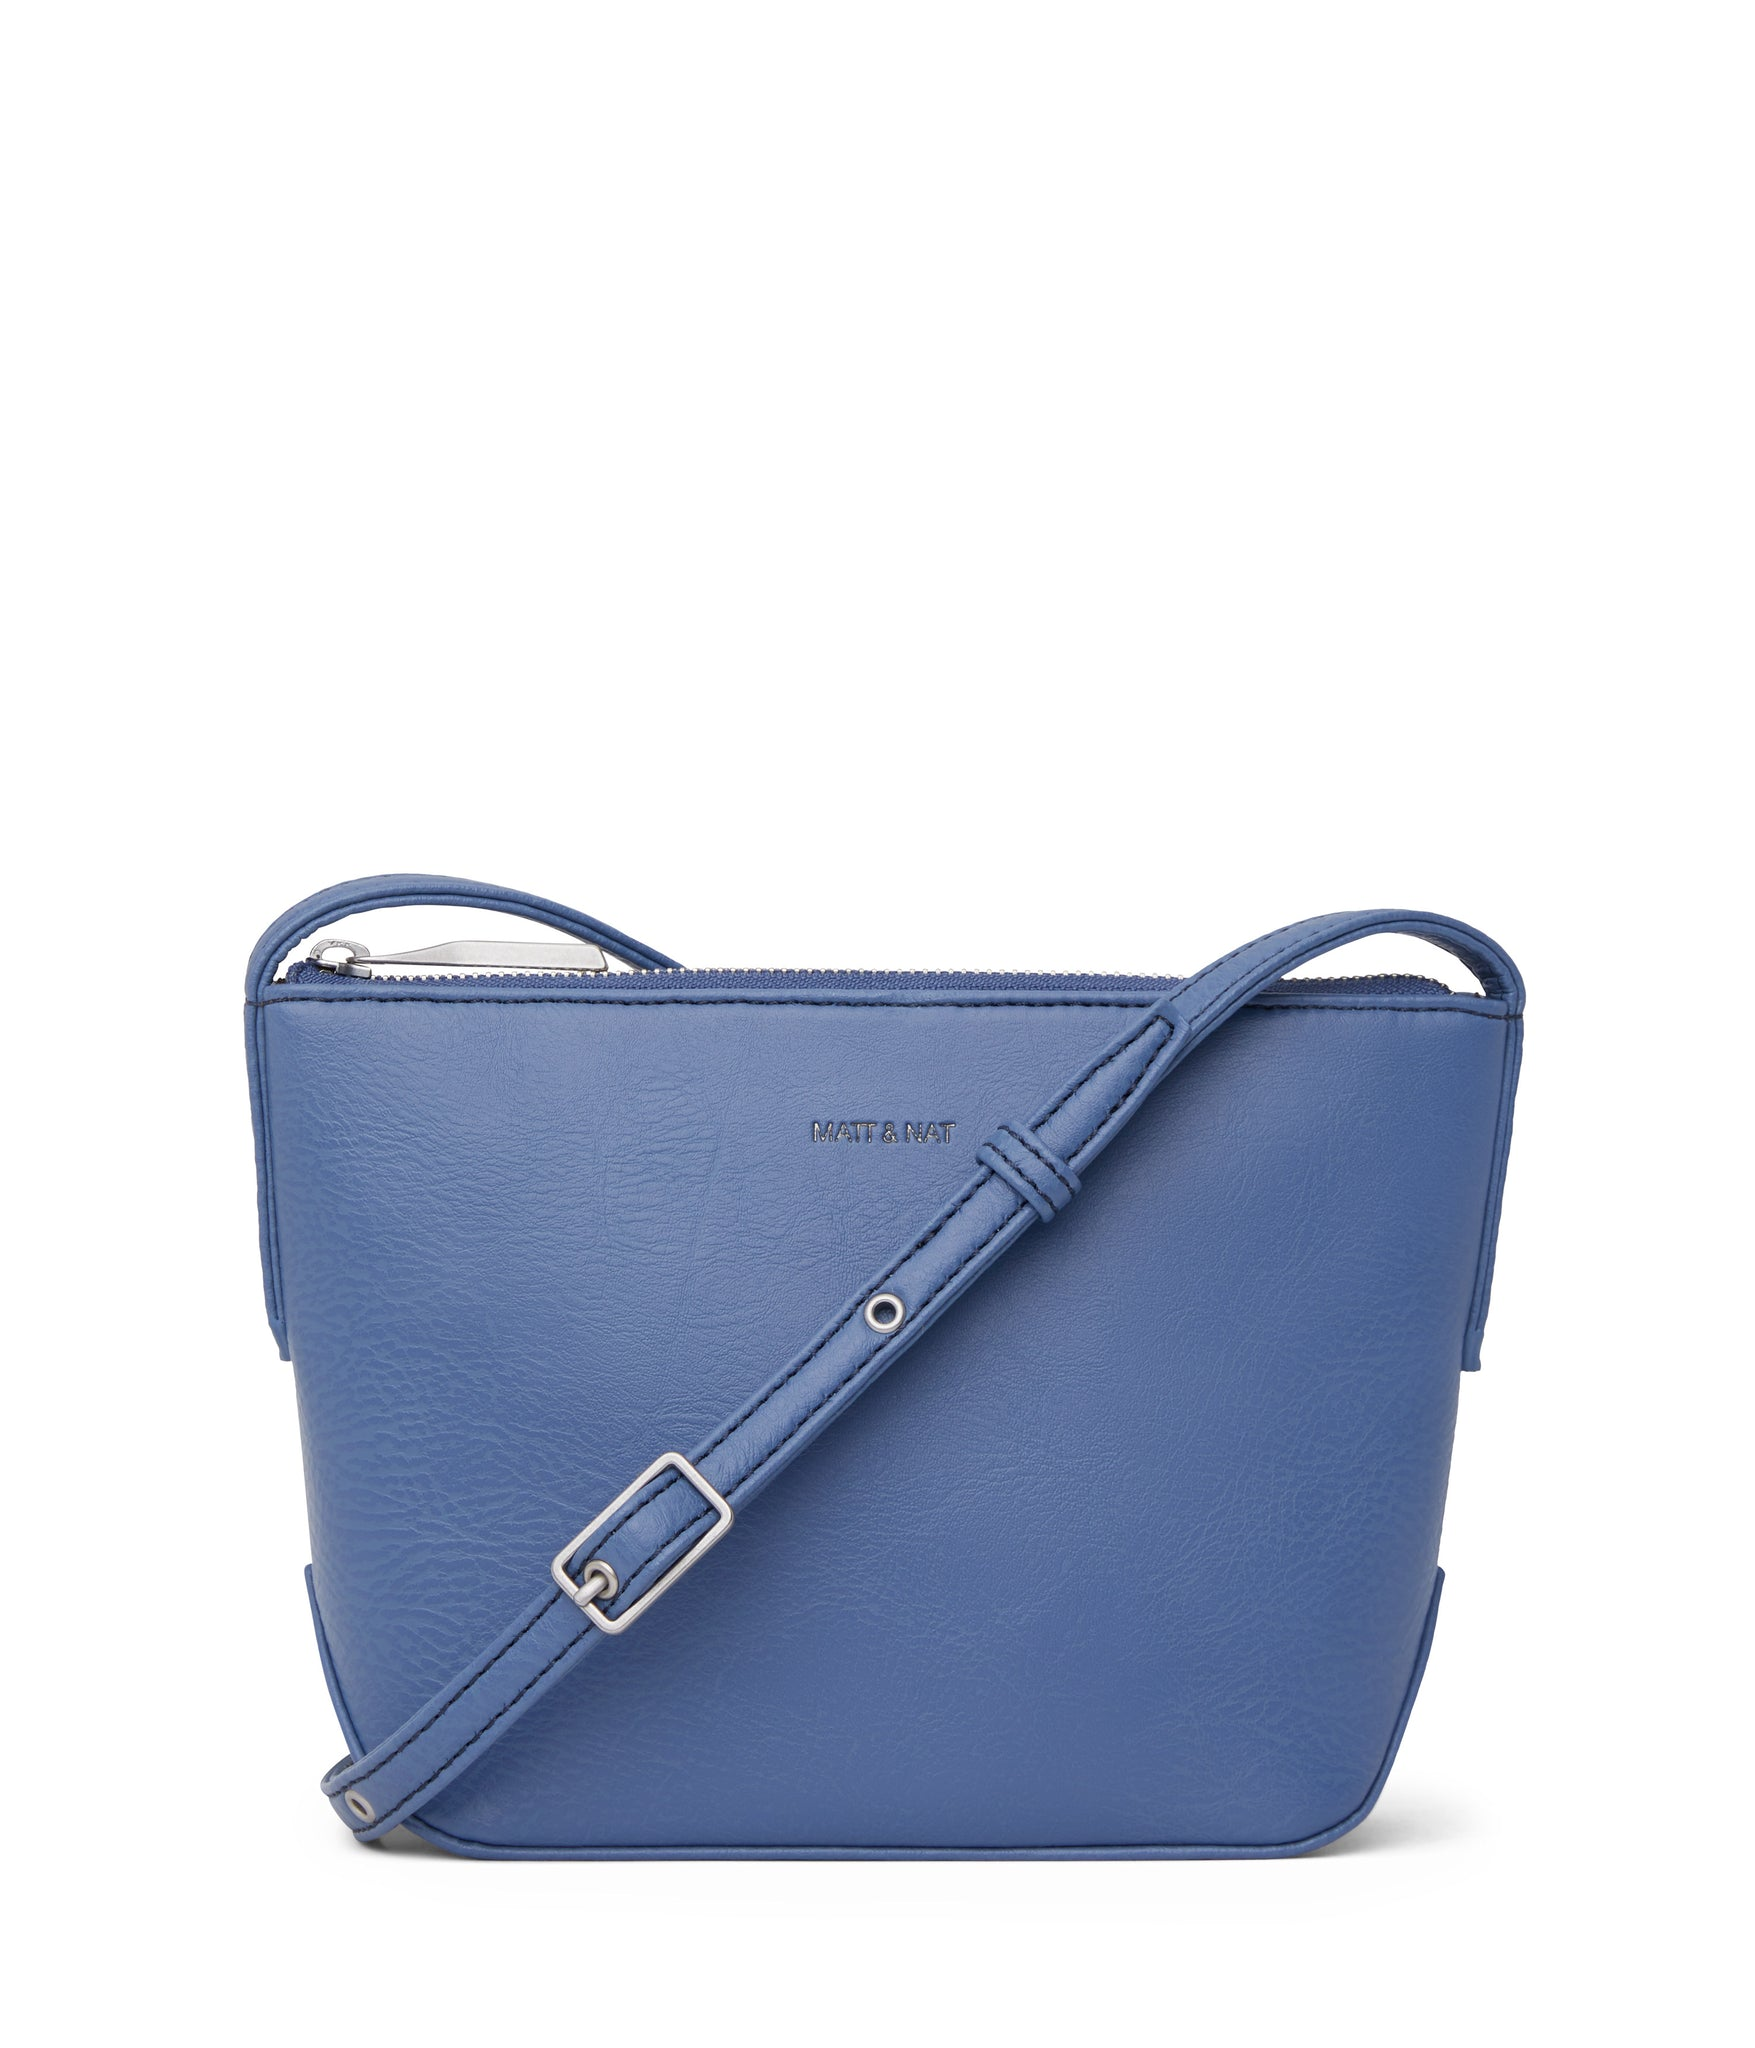 Matt & Nat- SAM SMALL Lake Crossbody Bag